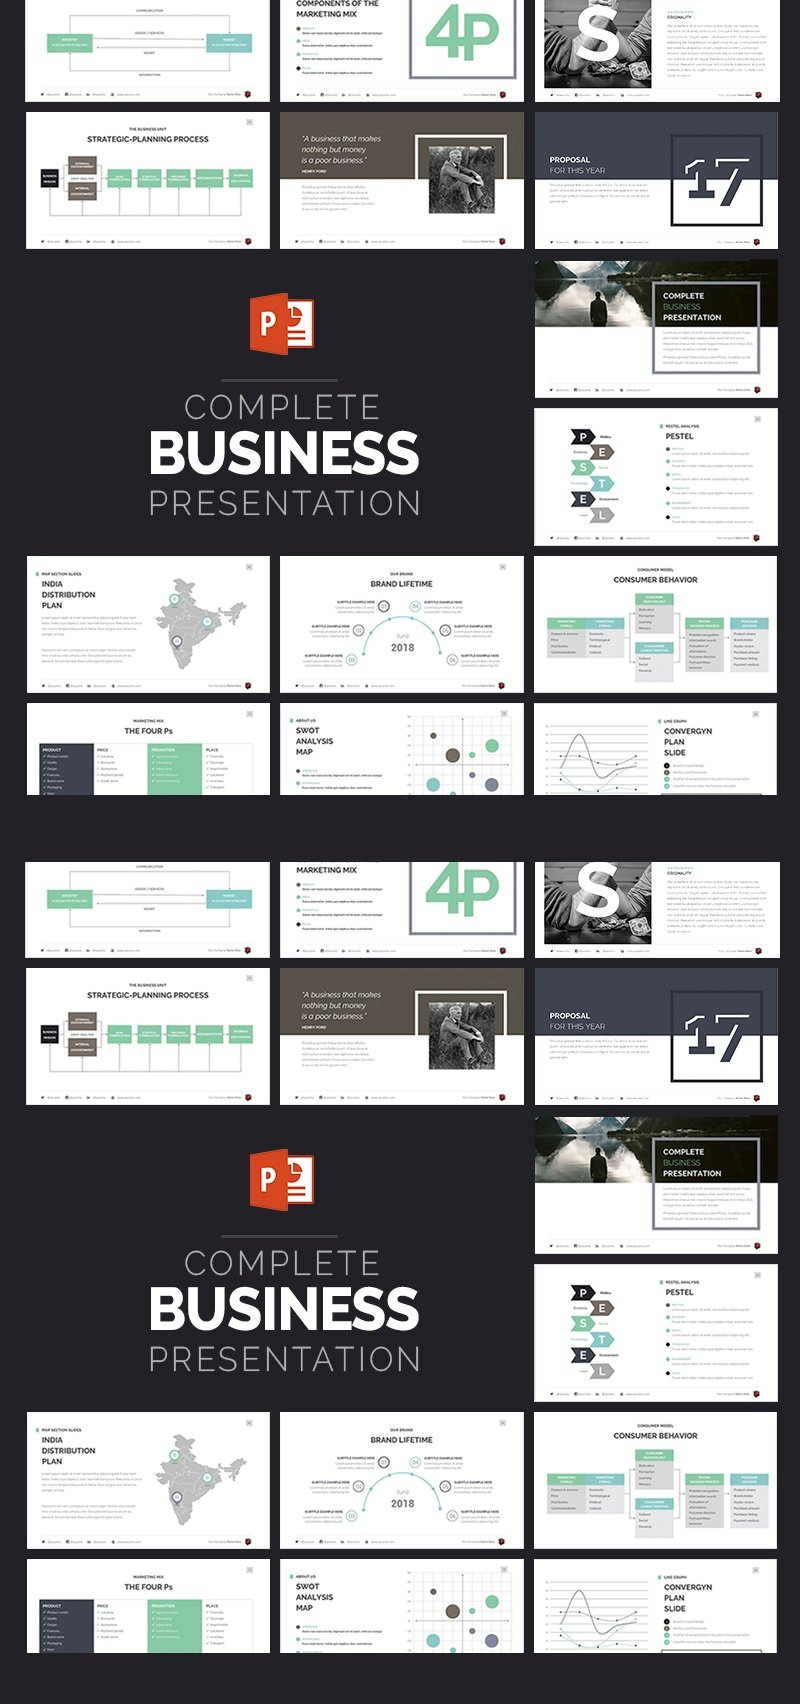 """Complete Business Presentation"" PowerPoint 模板 #63510"